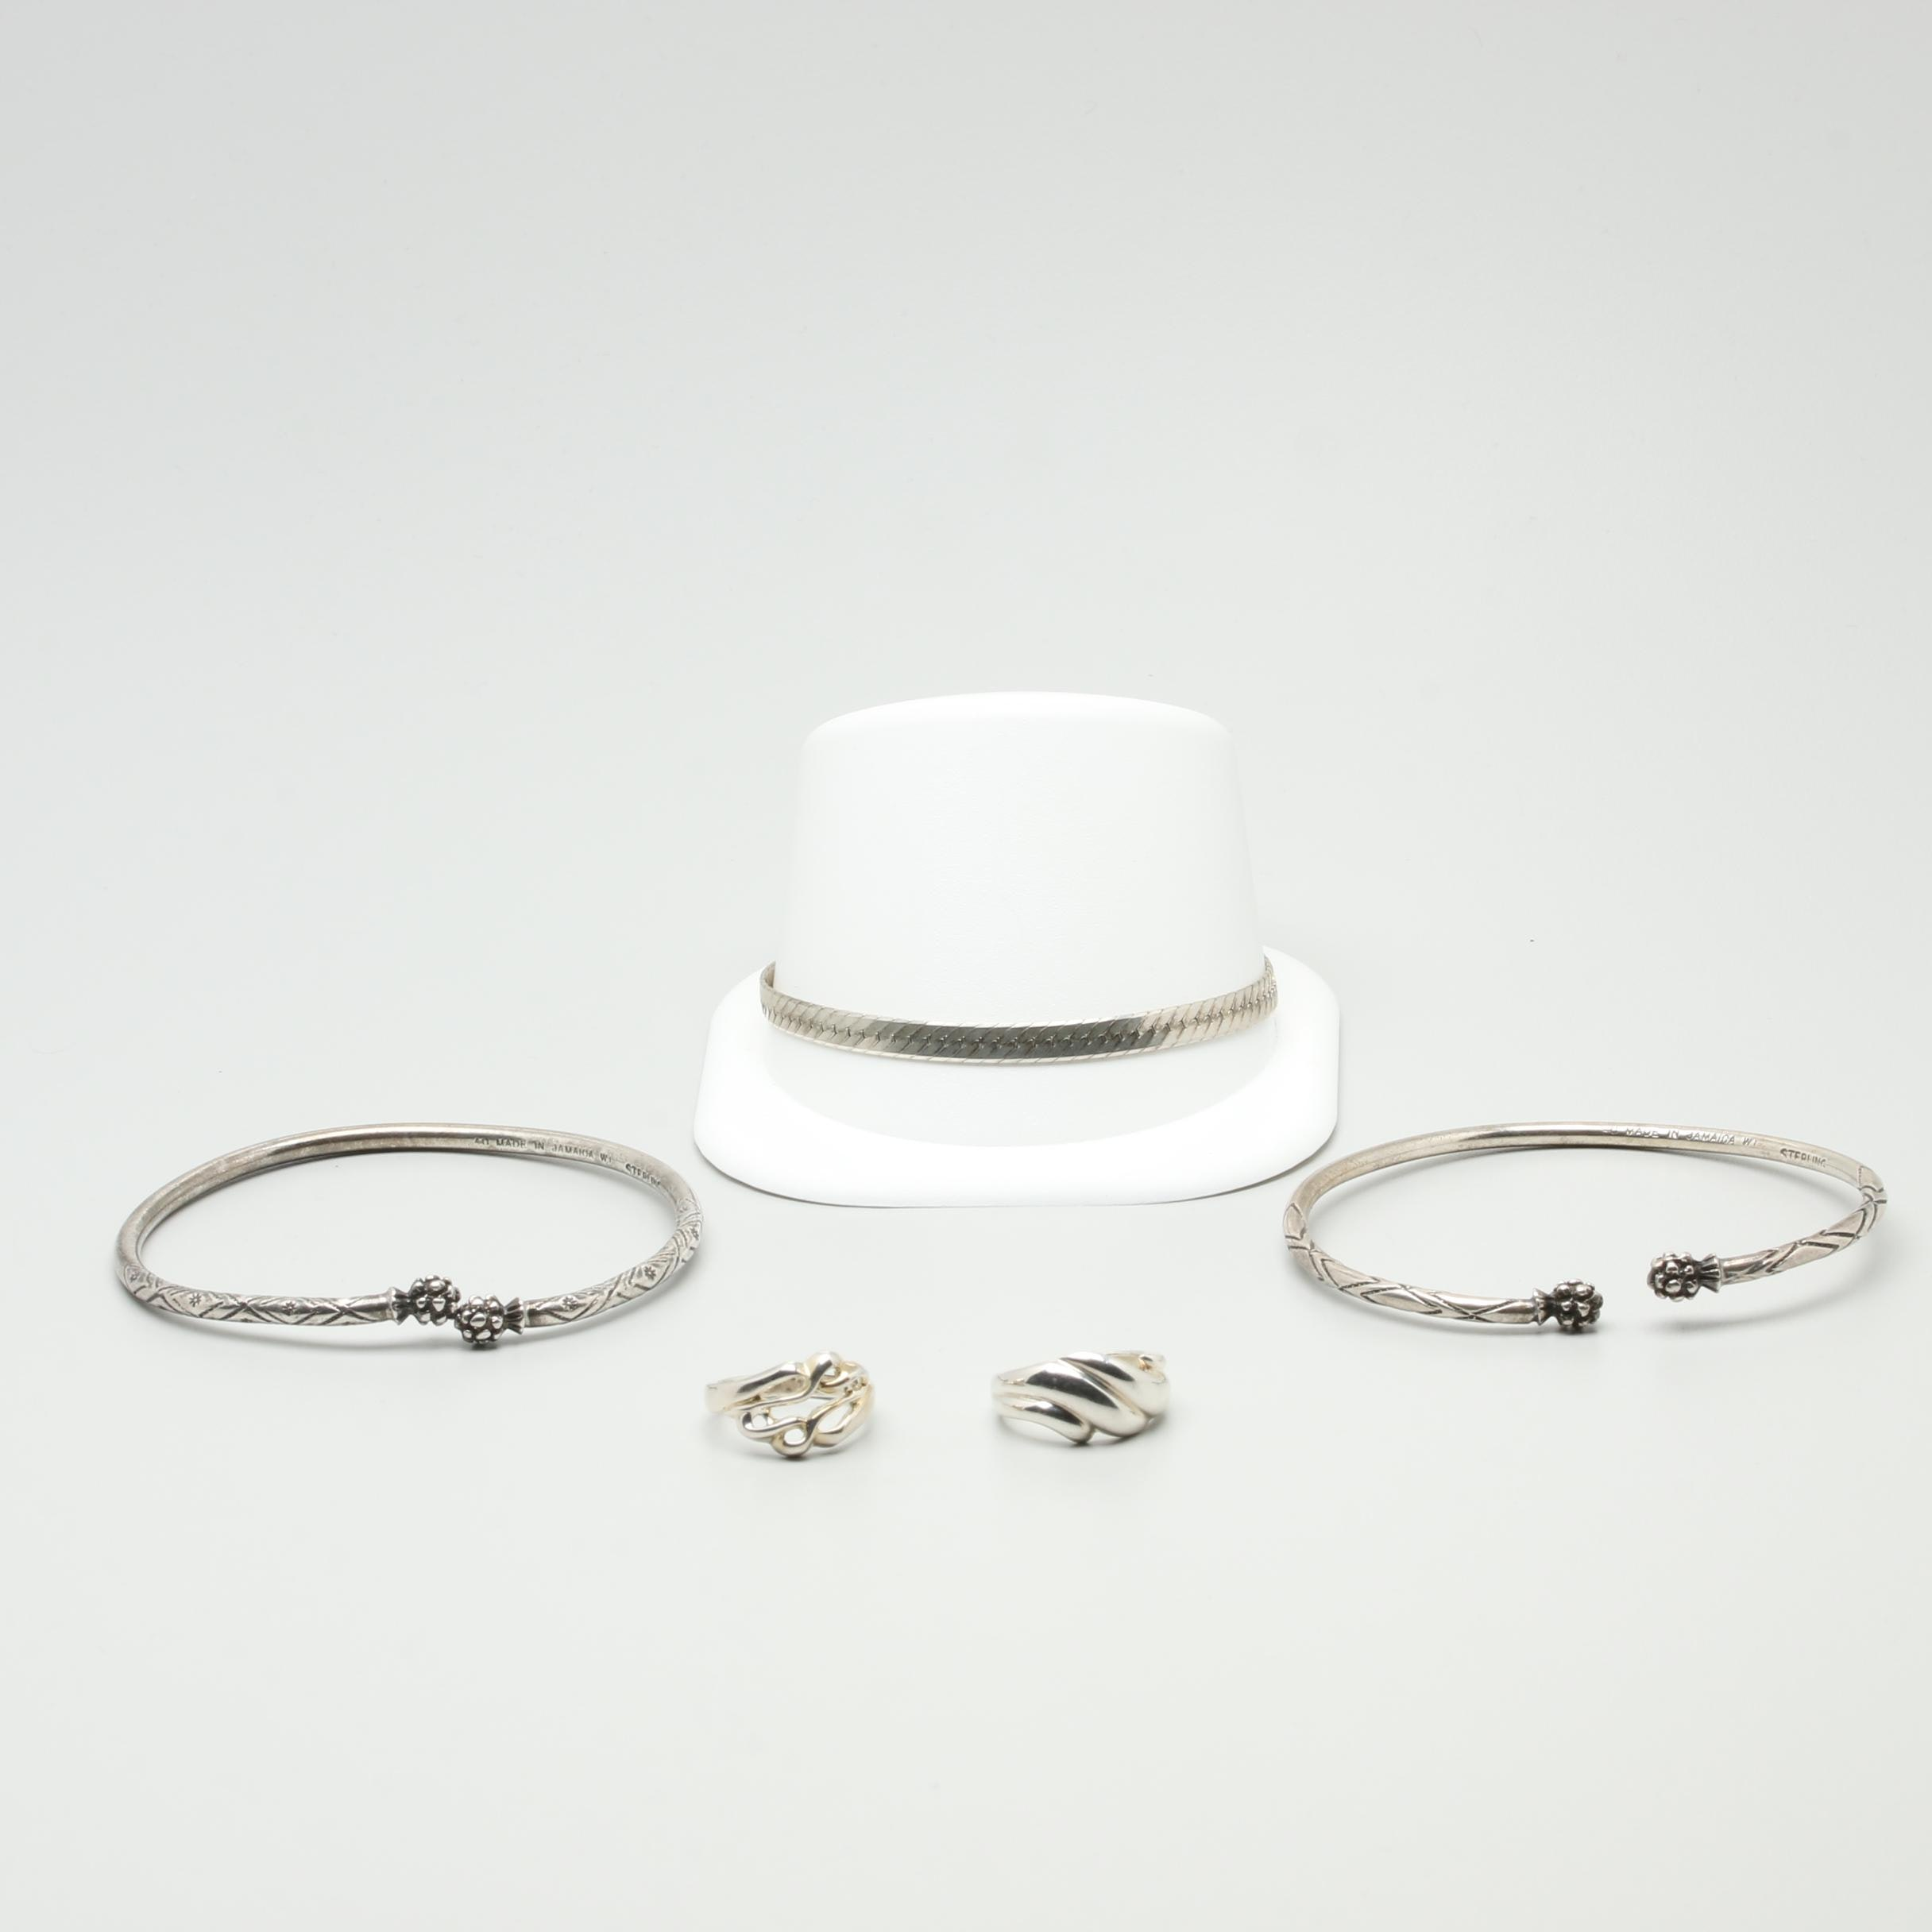 Sterling Silver Bracelets and Rings